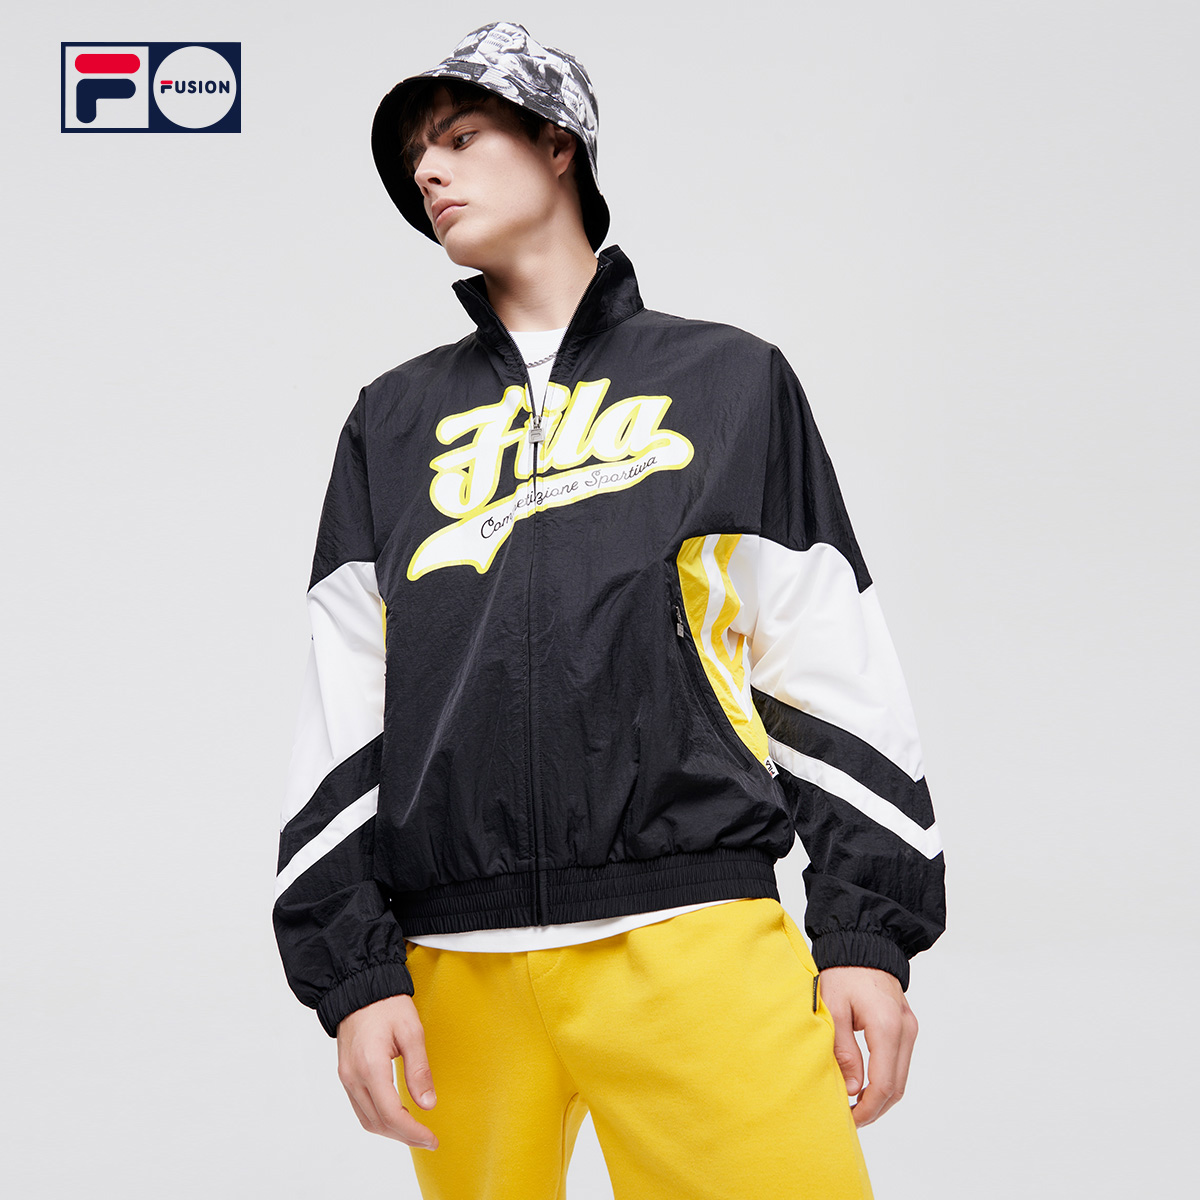 FILA FUSION Fi Tide Medal San Coat 2021 Summer New Fashion Sports Loose Jacket